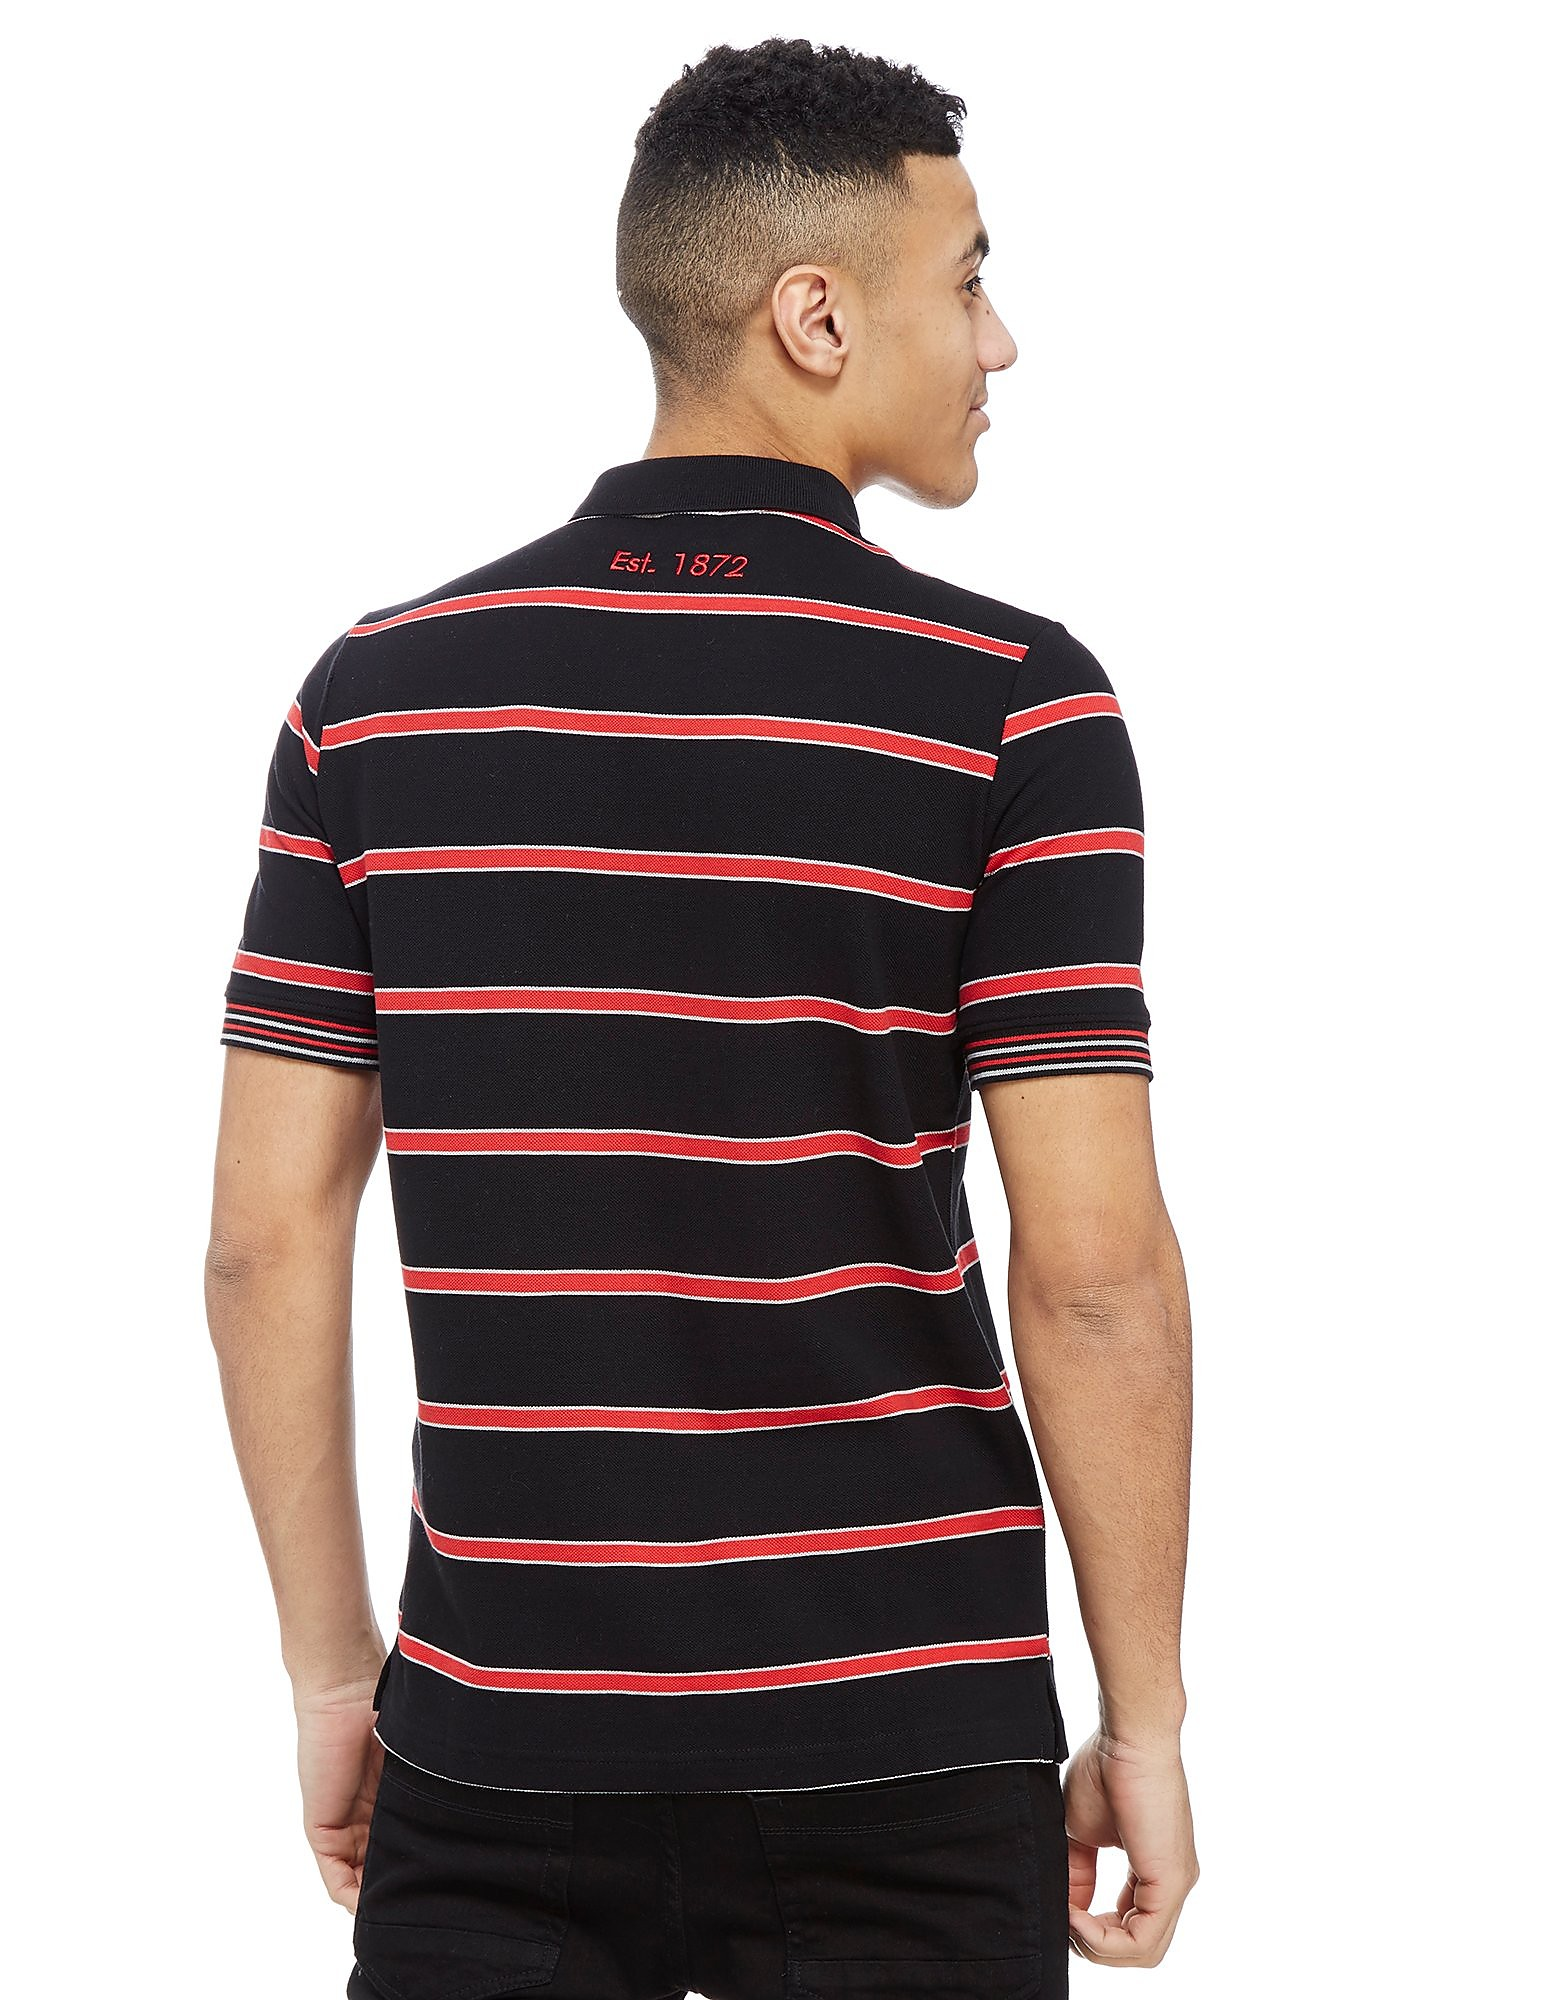 Macron Edinburgh Rugby Polo Shirt